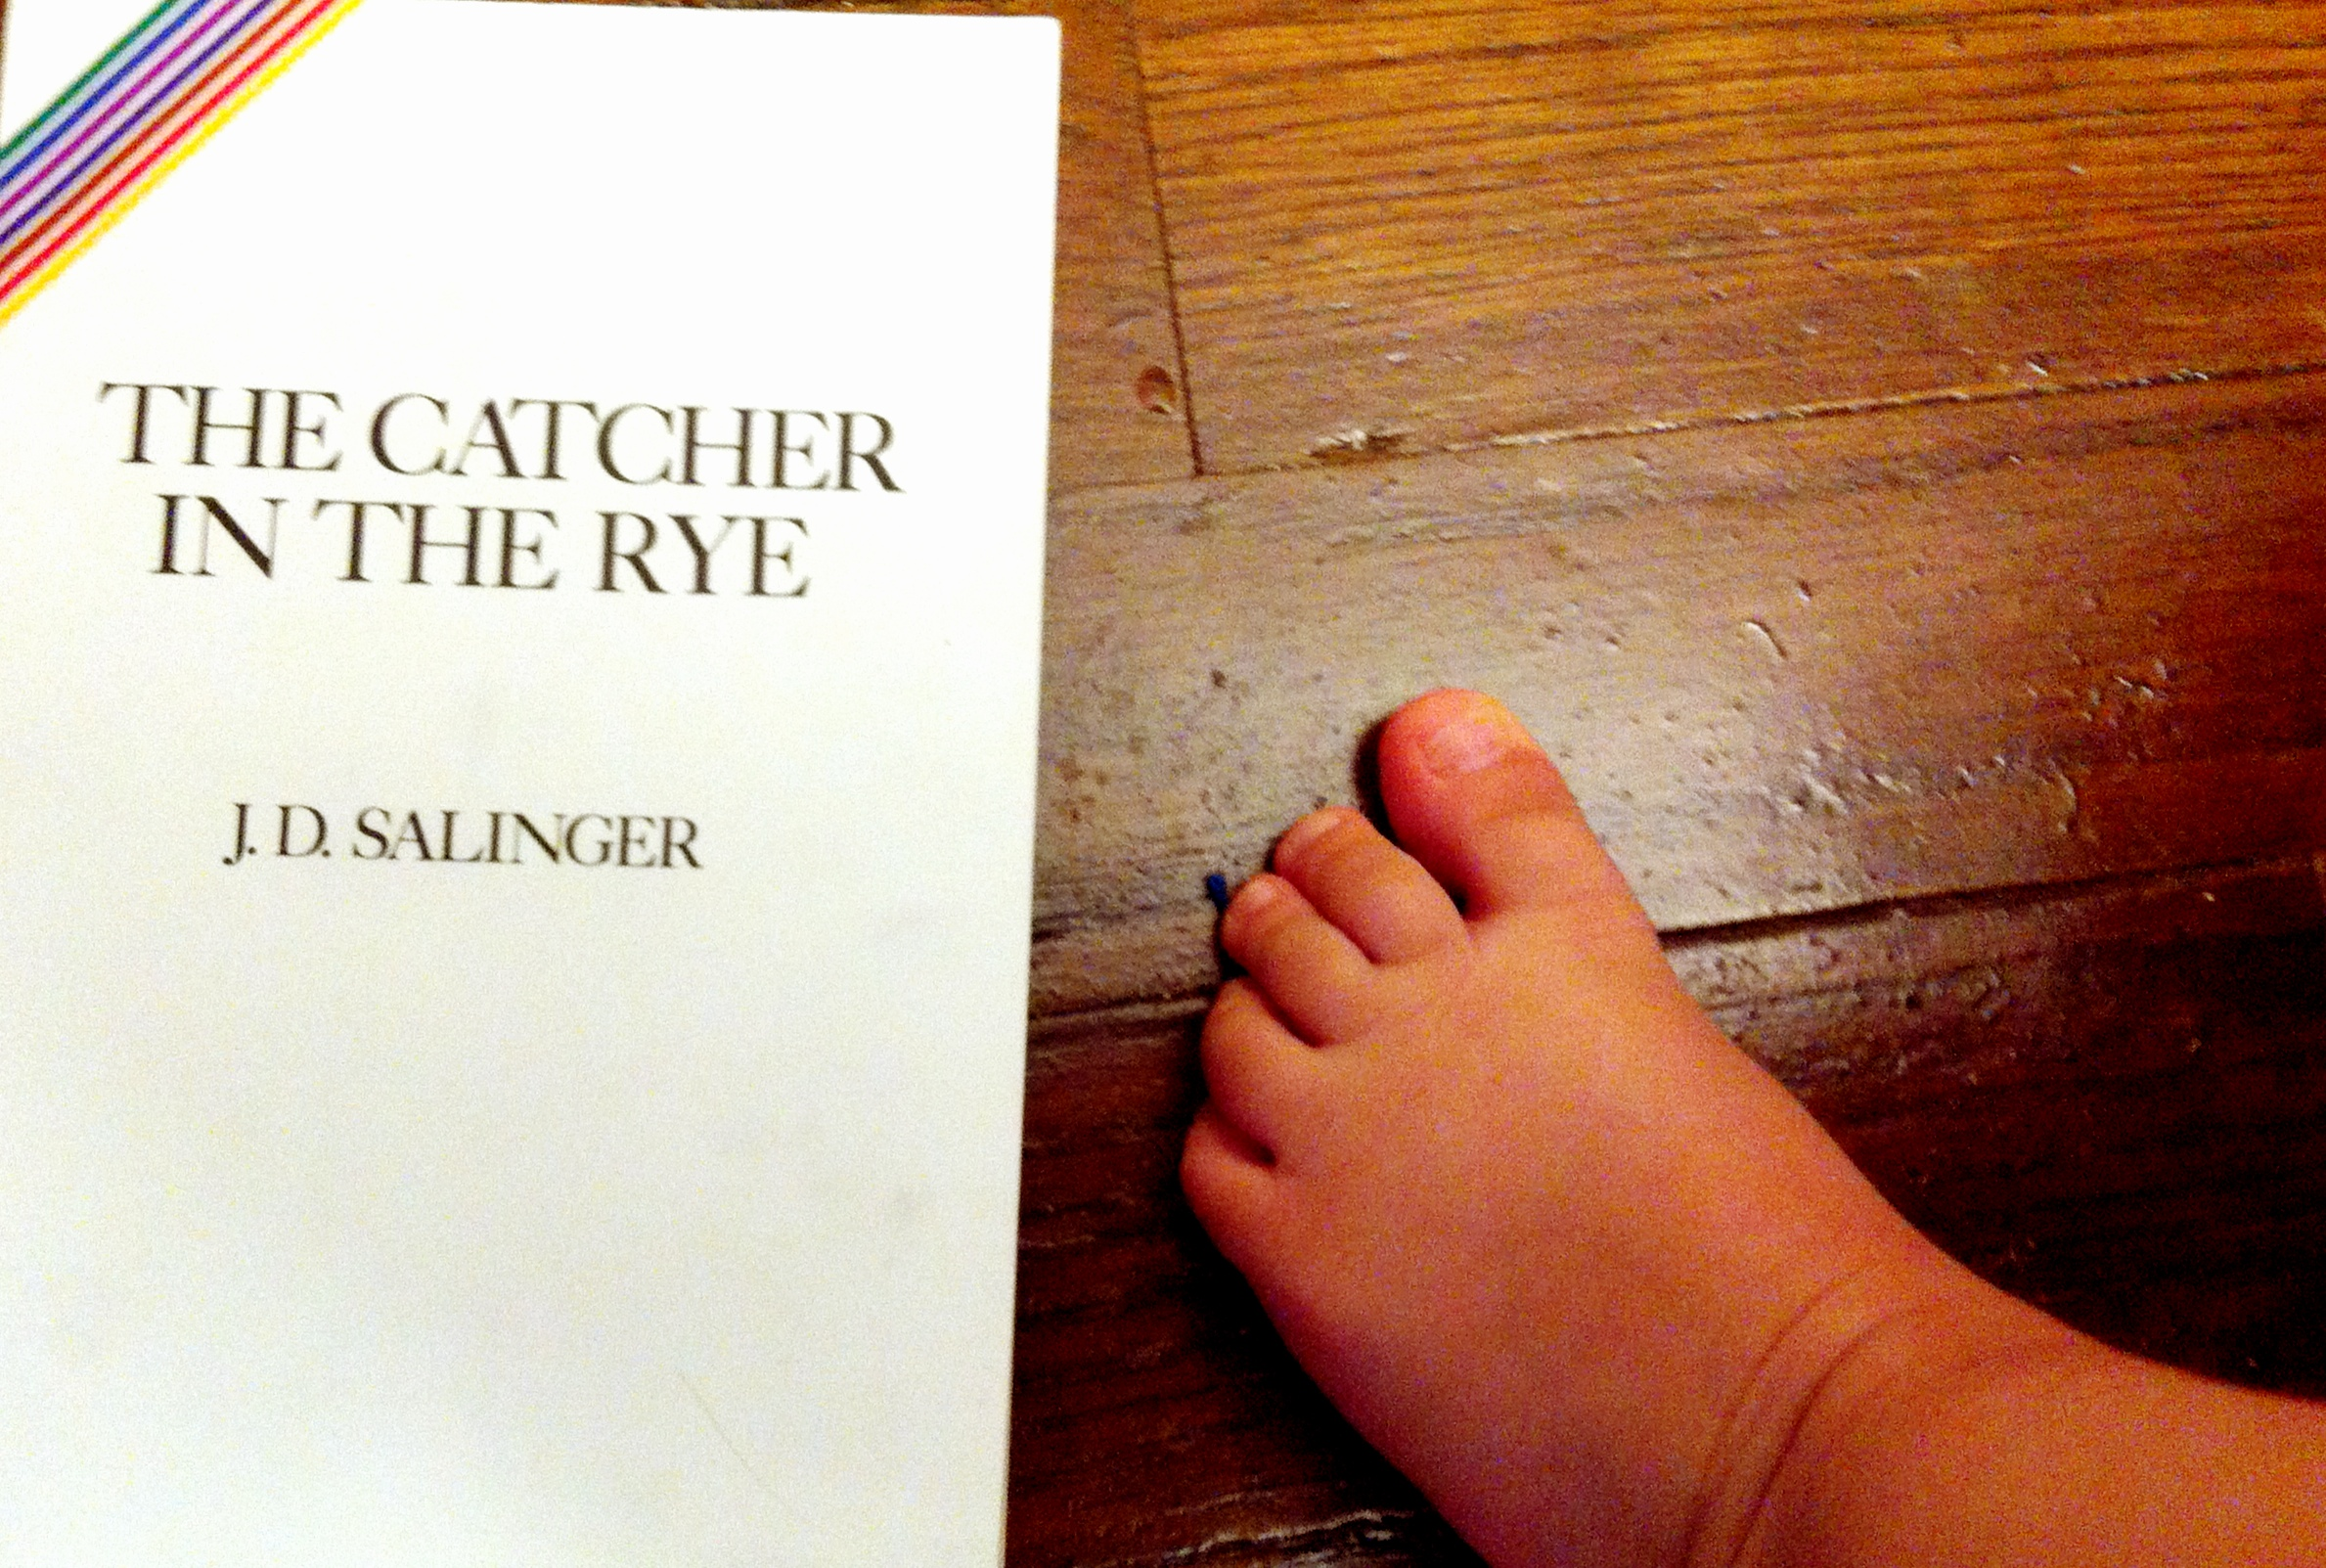 catcher in rye obsession on childhood Holden's attitudes toward childhood and adulthood in salinger's, the catcher in the rye.